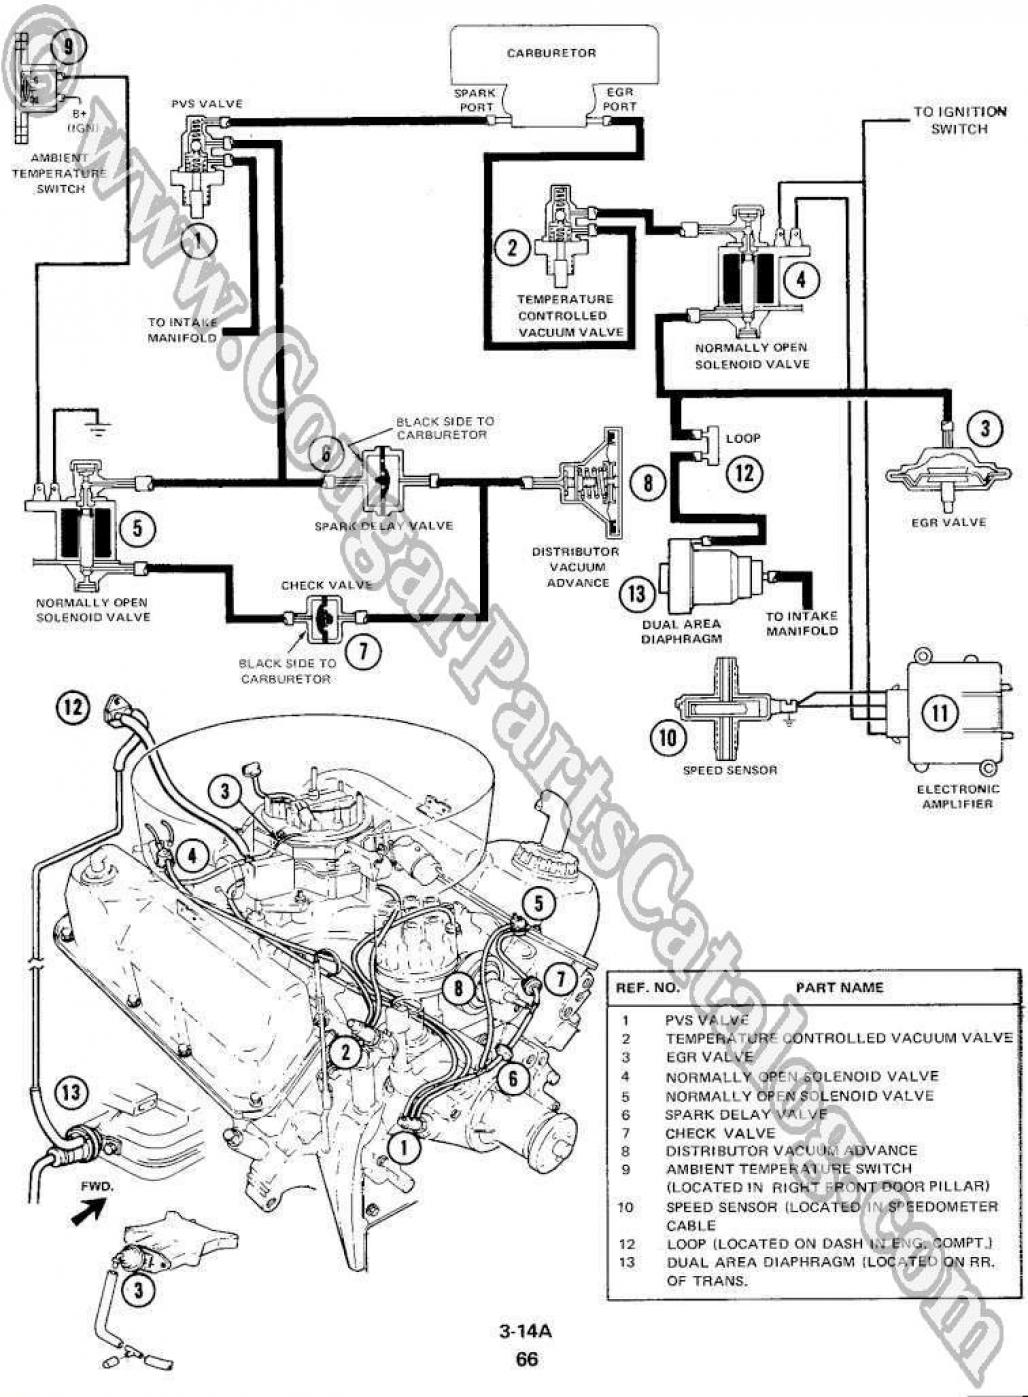 67 Ford Mustang 289 Engine Wiring Diagrams